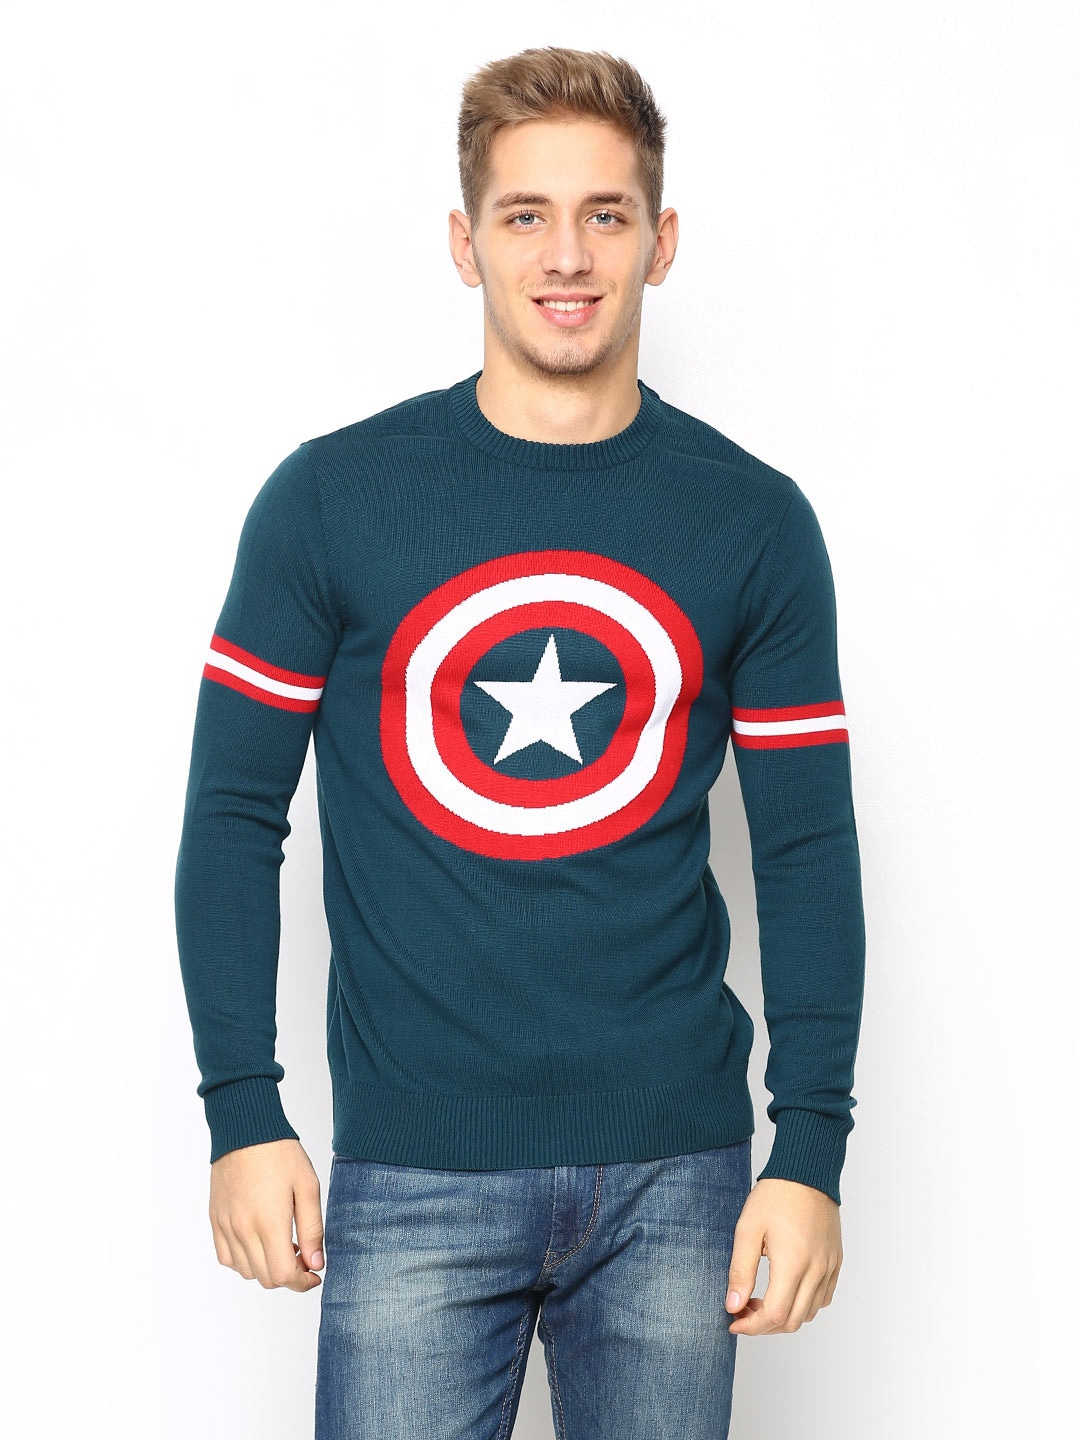 Marvel Marvel Men Teal Blue Sweater (Cyan)